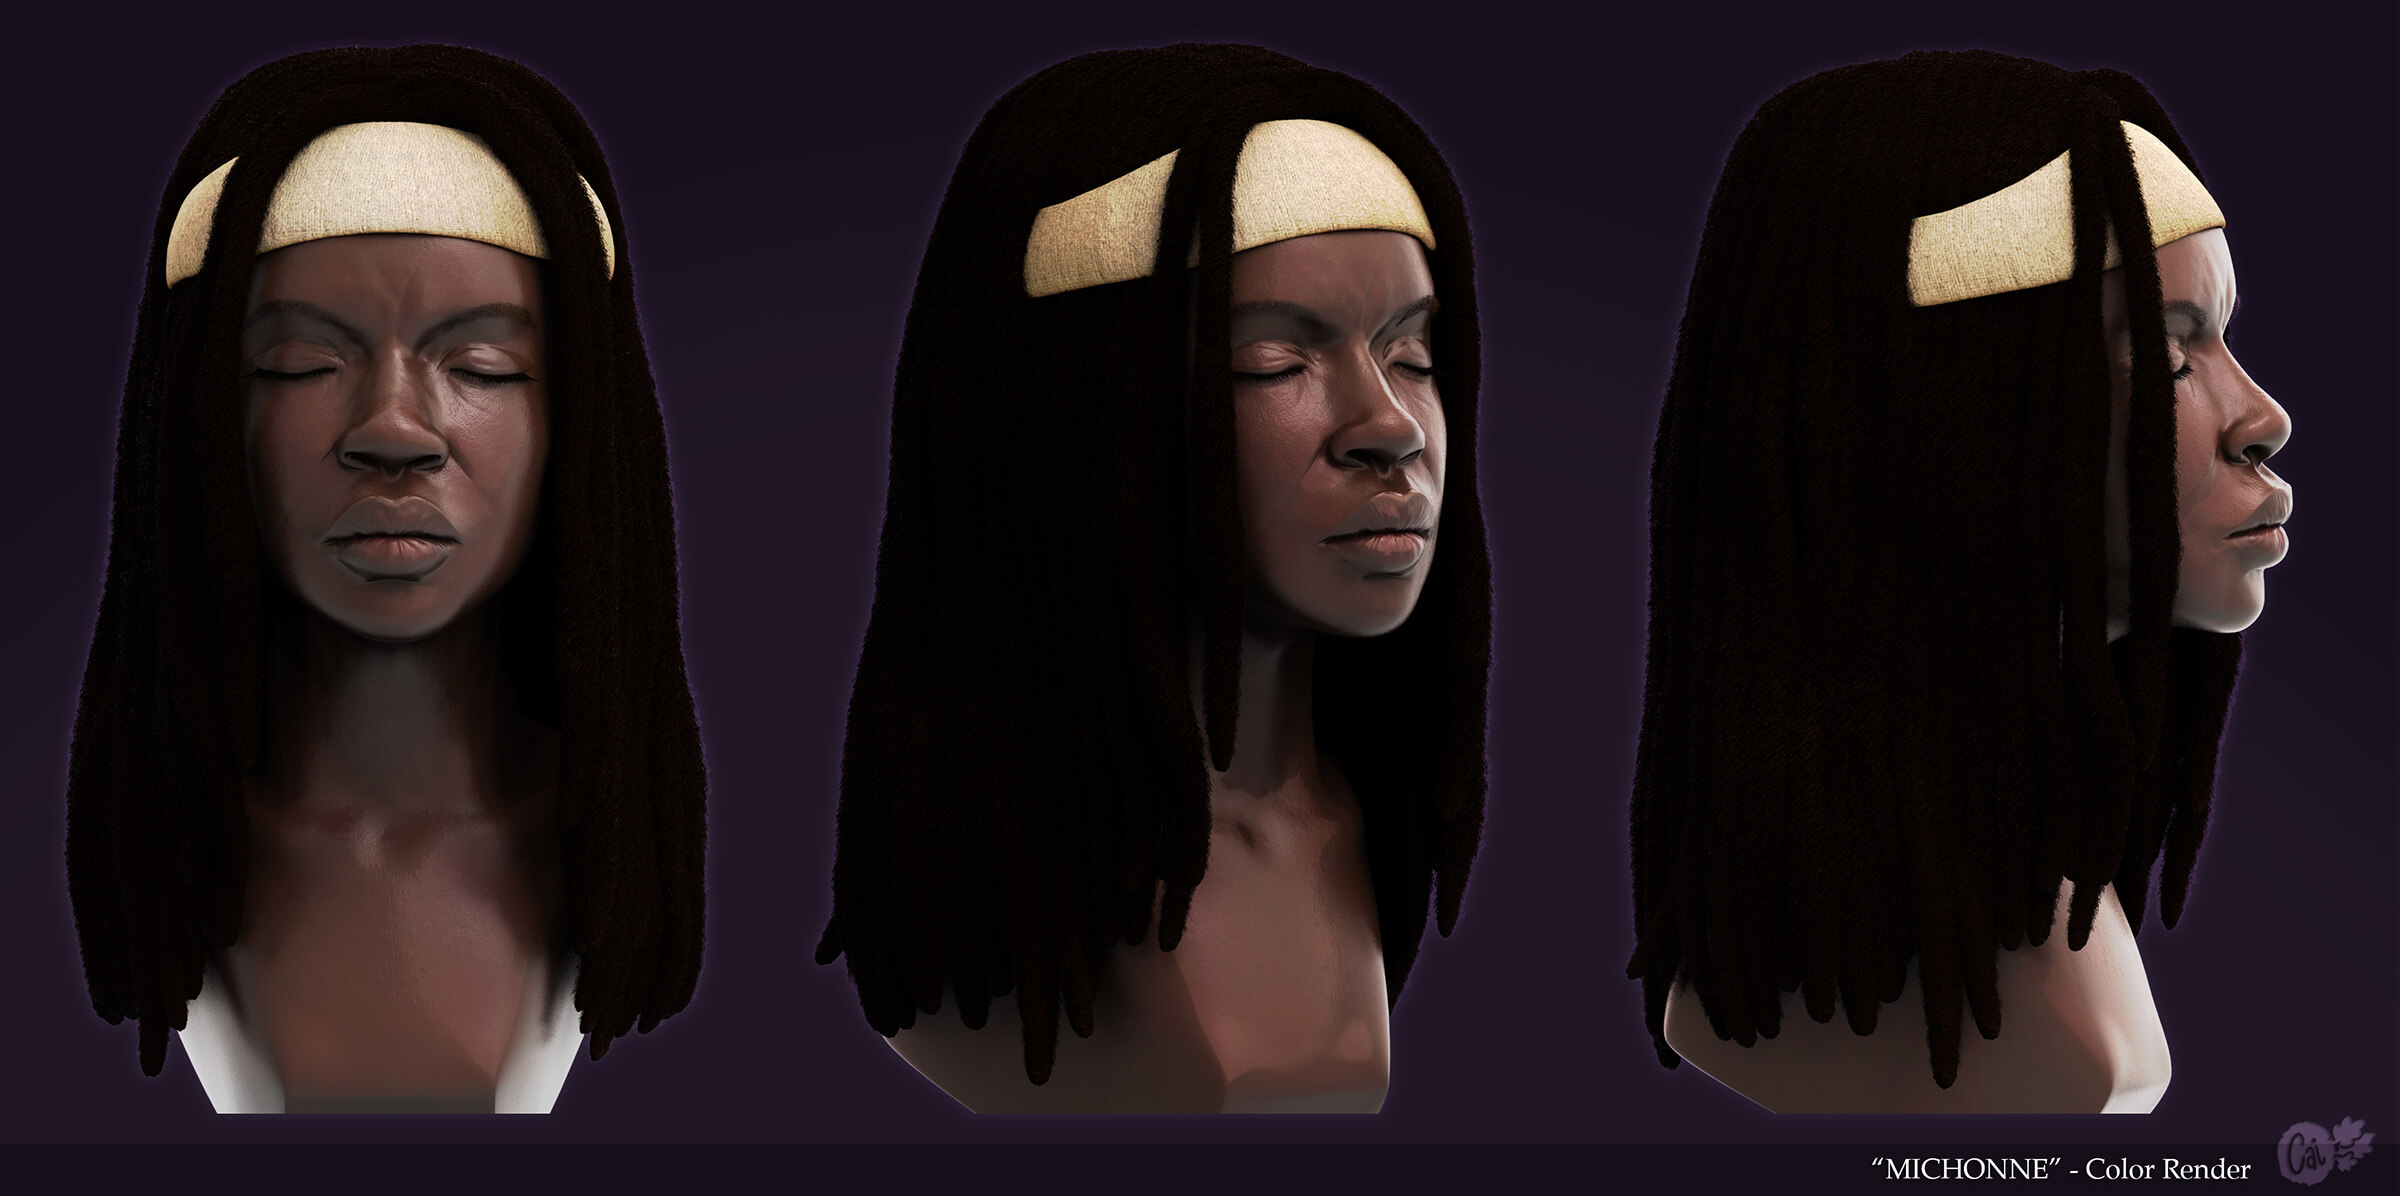 Three angles of a woman with dreadlocks and a white headband